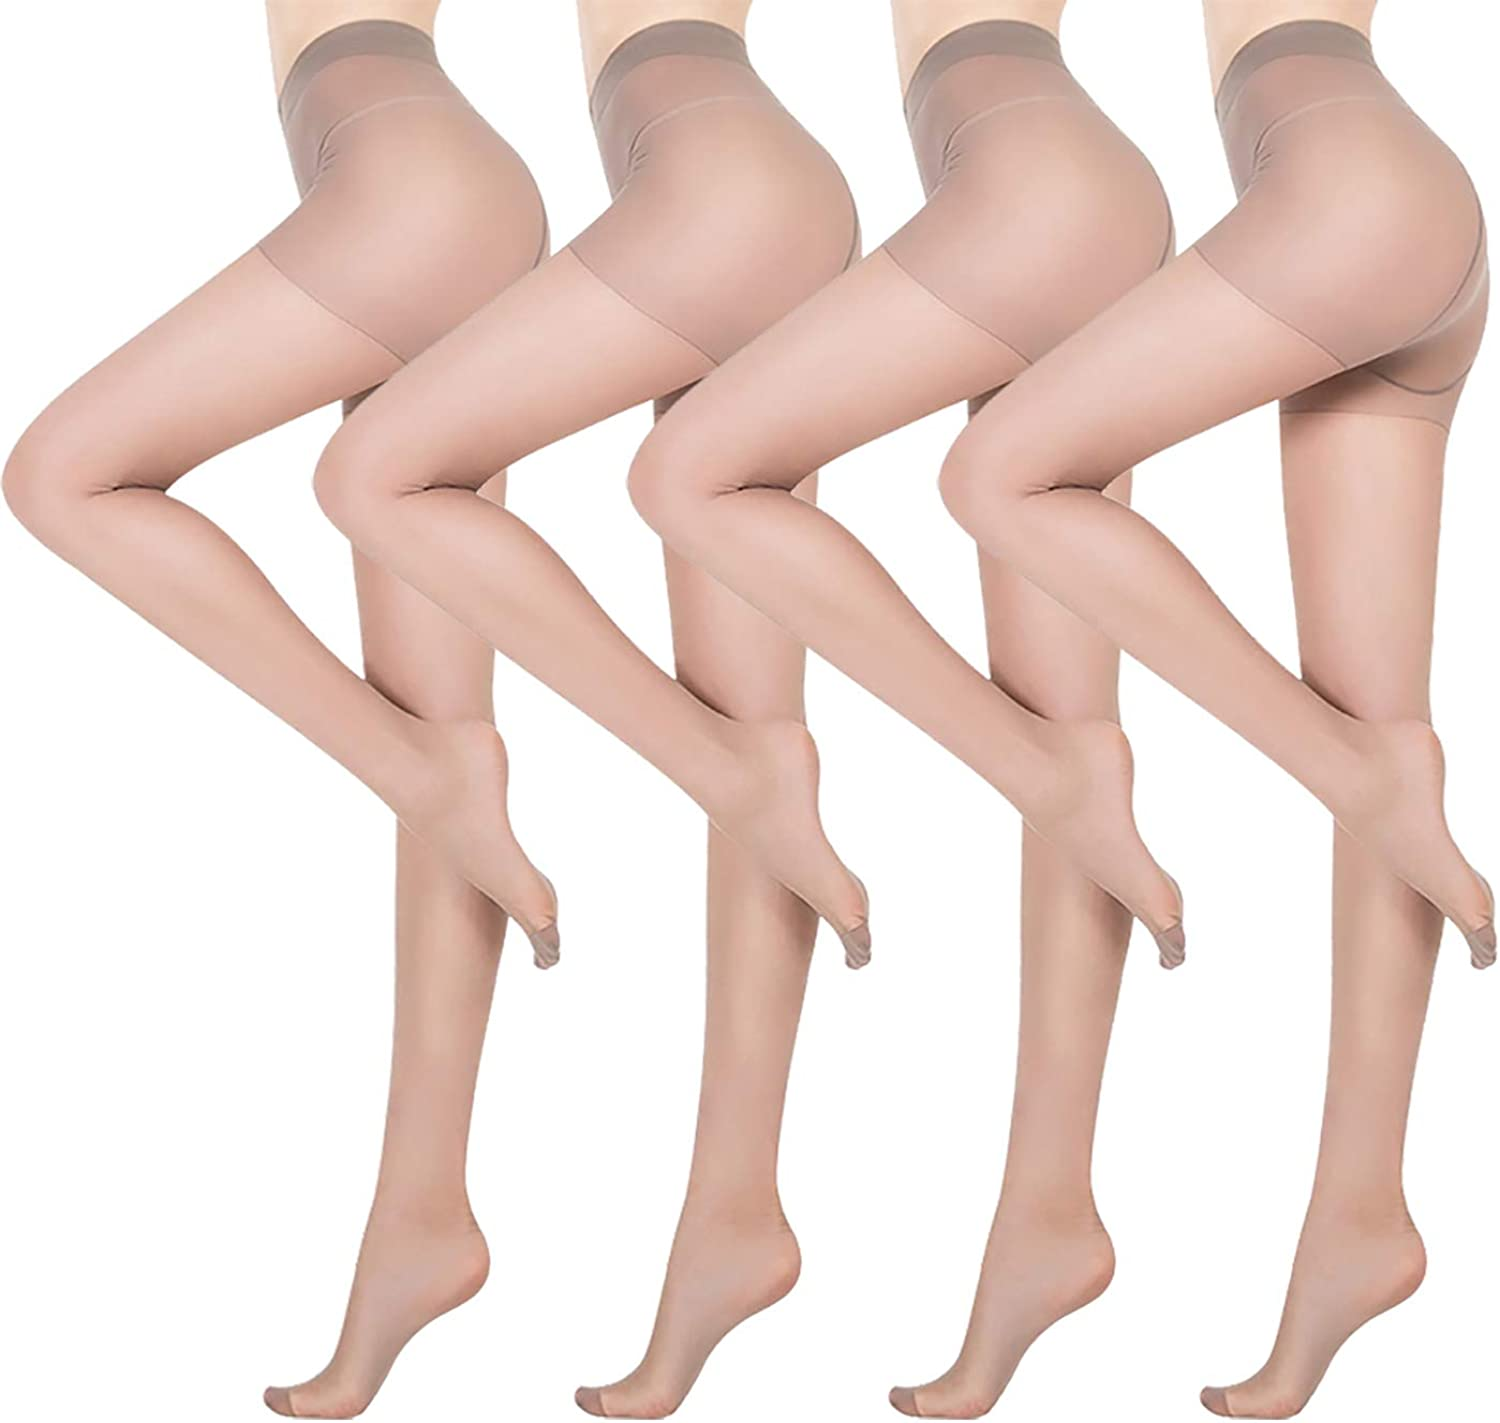 Swbreety Women Sheer Reinforced Crotch Control Top Pantyhose Tights 4 Pairs